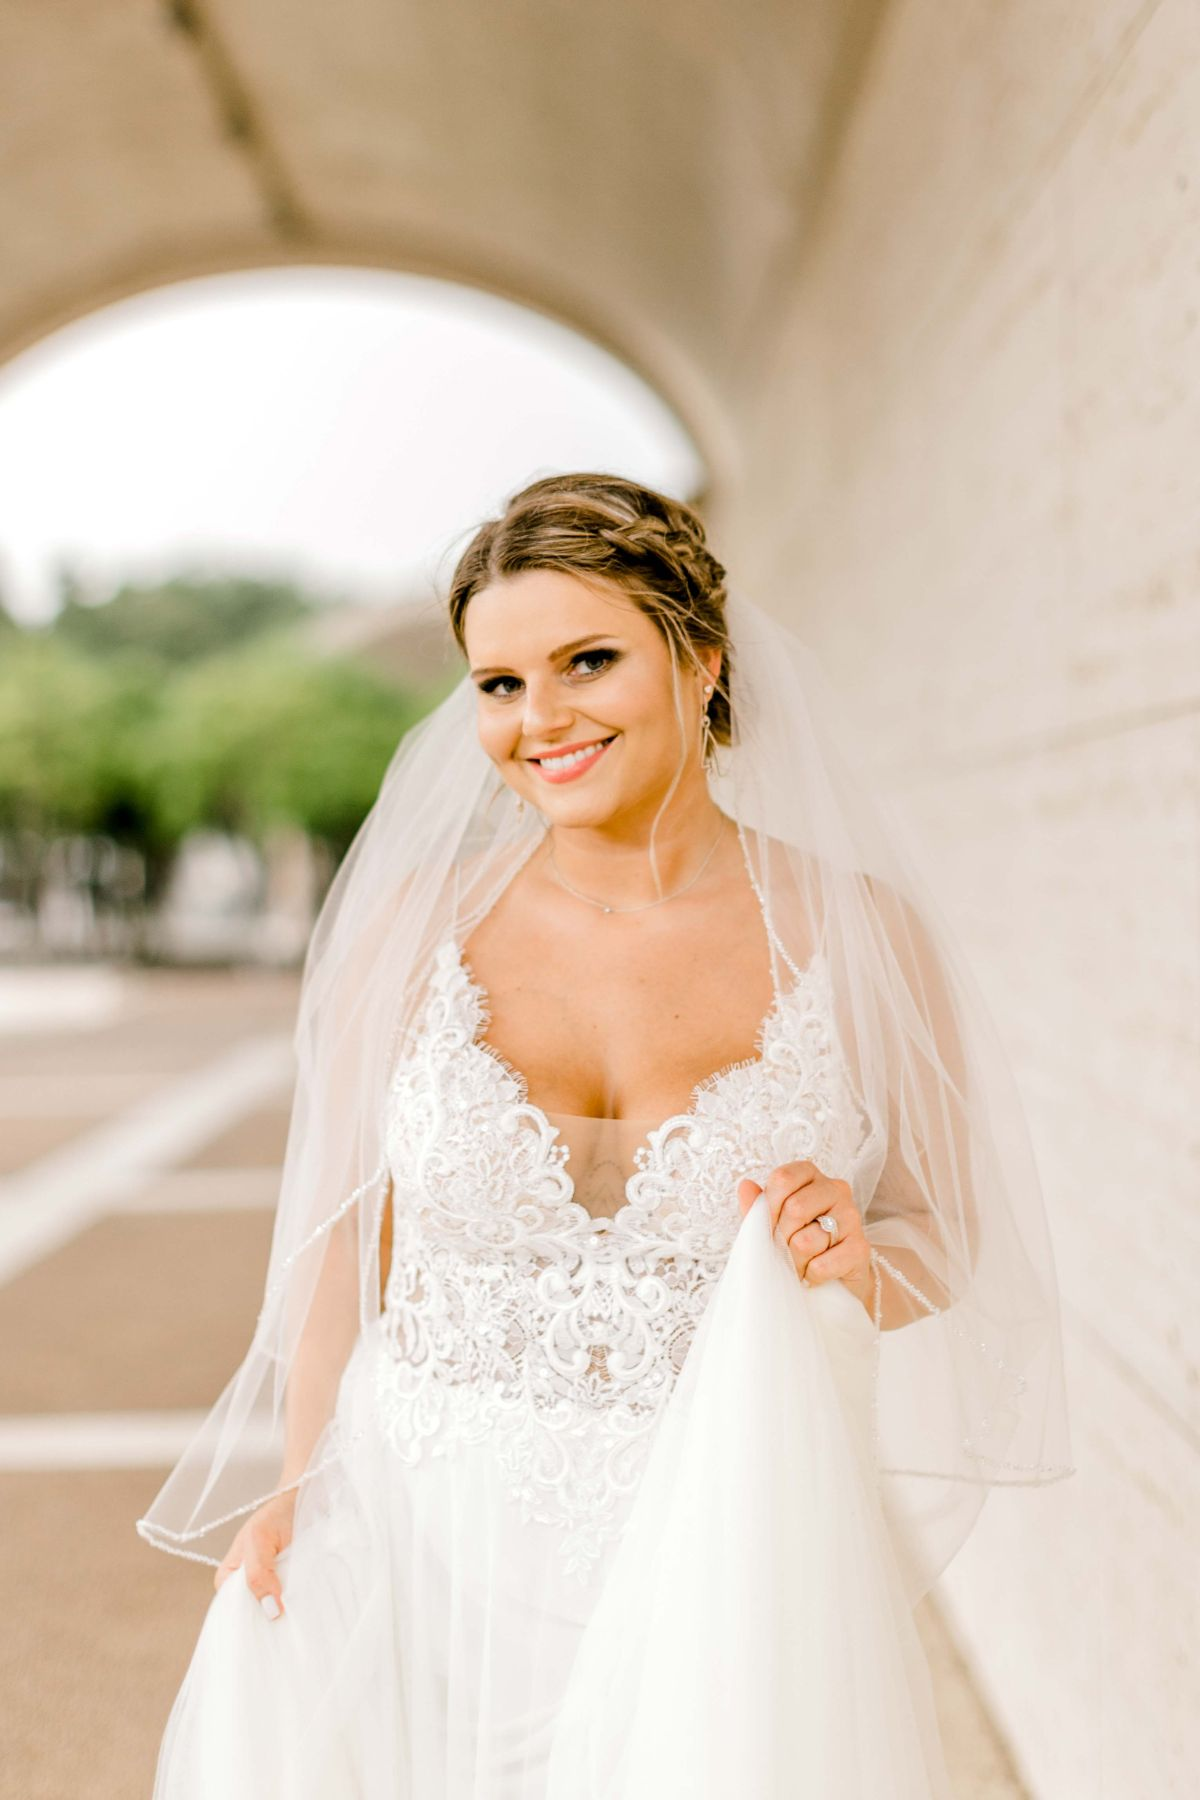 sarah-bridals-fort-worth-wedding-photographer-39.jpg